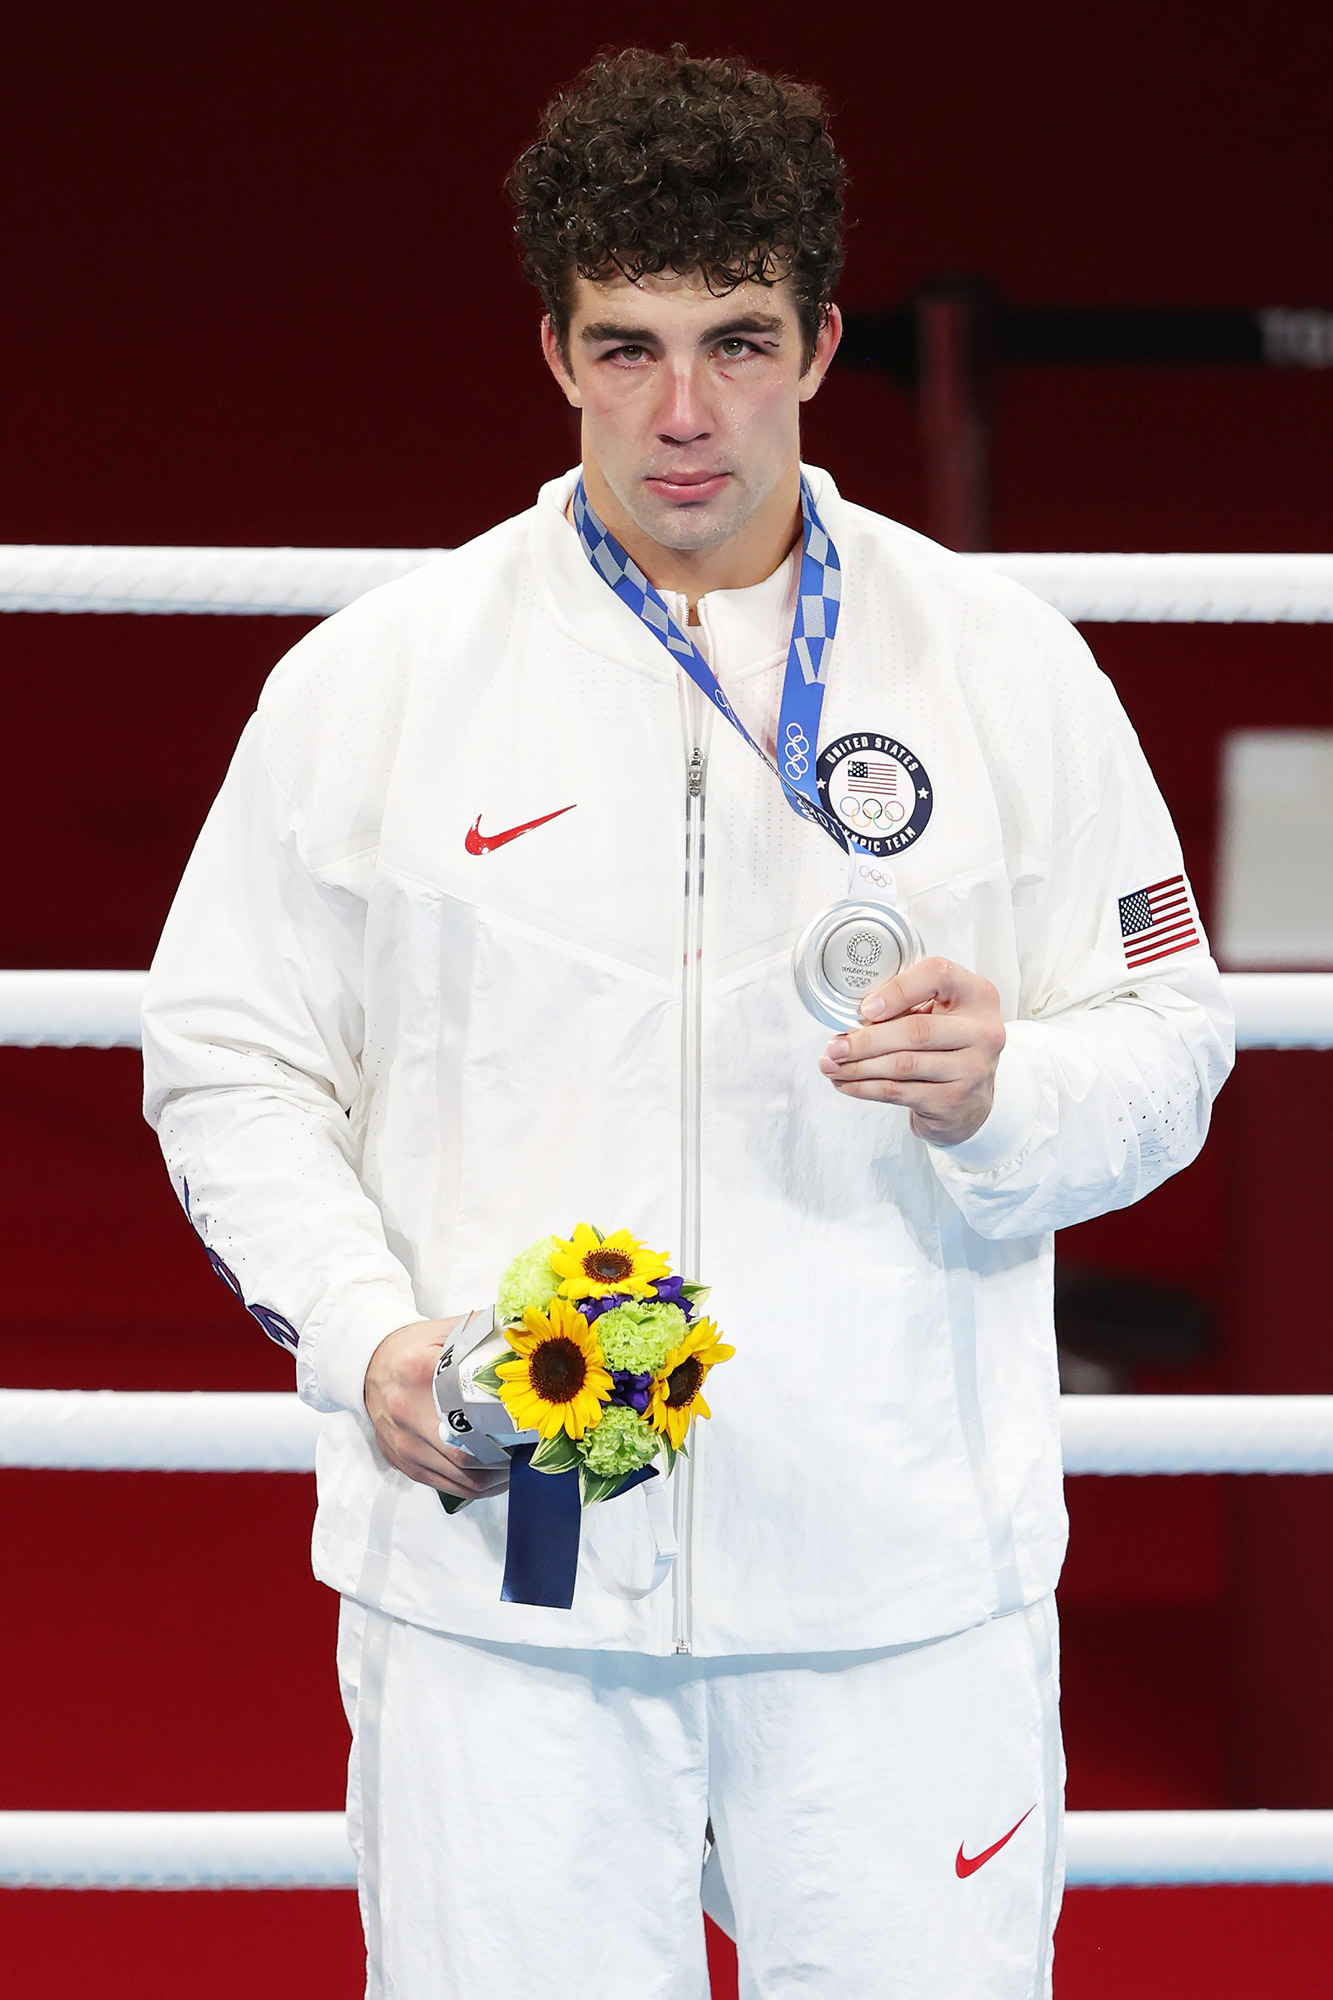 Richard Torrez Jr of Team United States celebrates with his silver medal during the medal ceremony for the Men's Super Heavy (+91kg) Final on day sixteen of the Tokyo 2020 Olympic games at Kokugikan Arena on August 08, 2021 in Tokyo, Japan